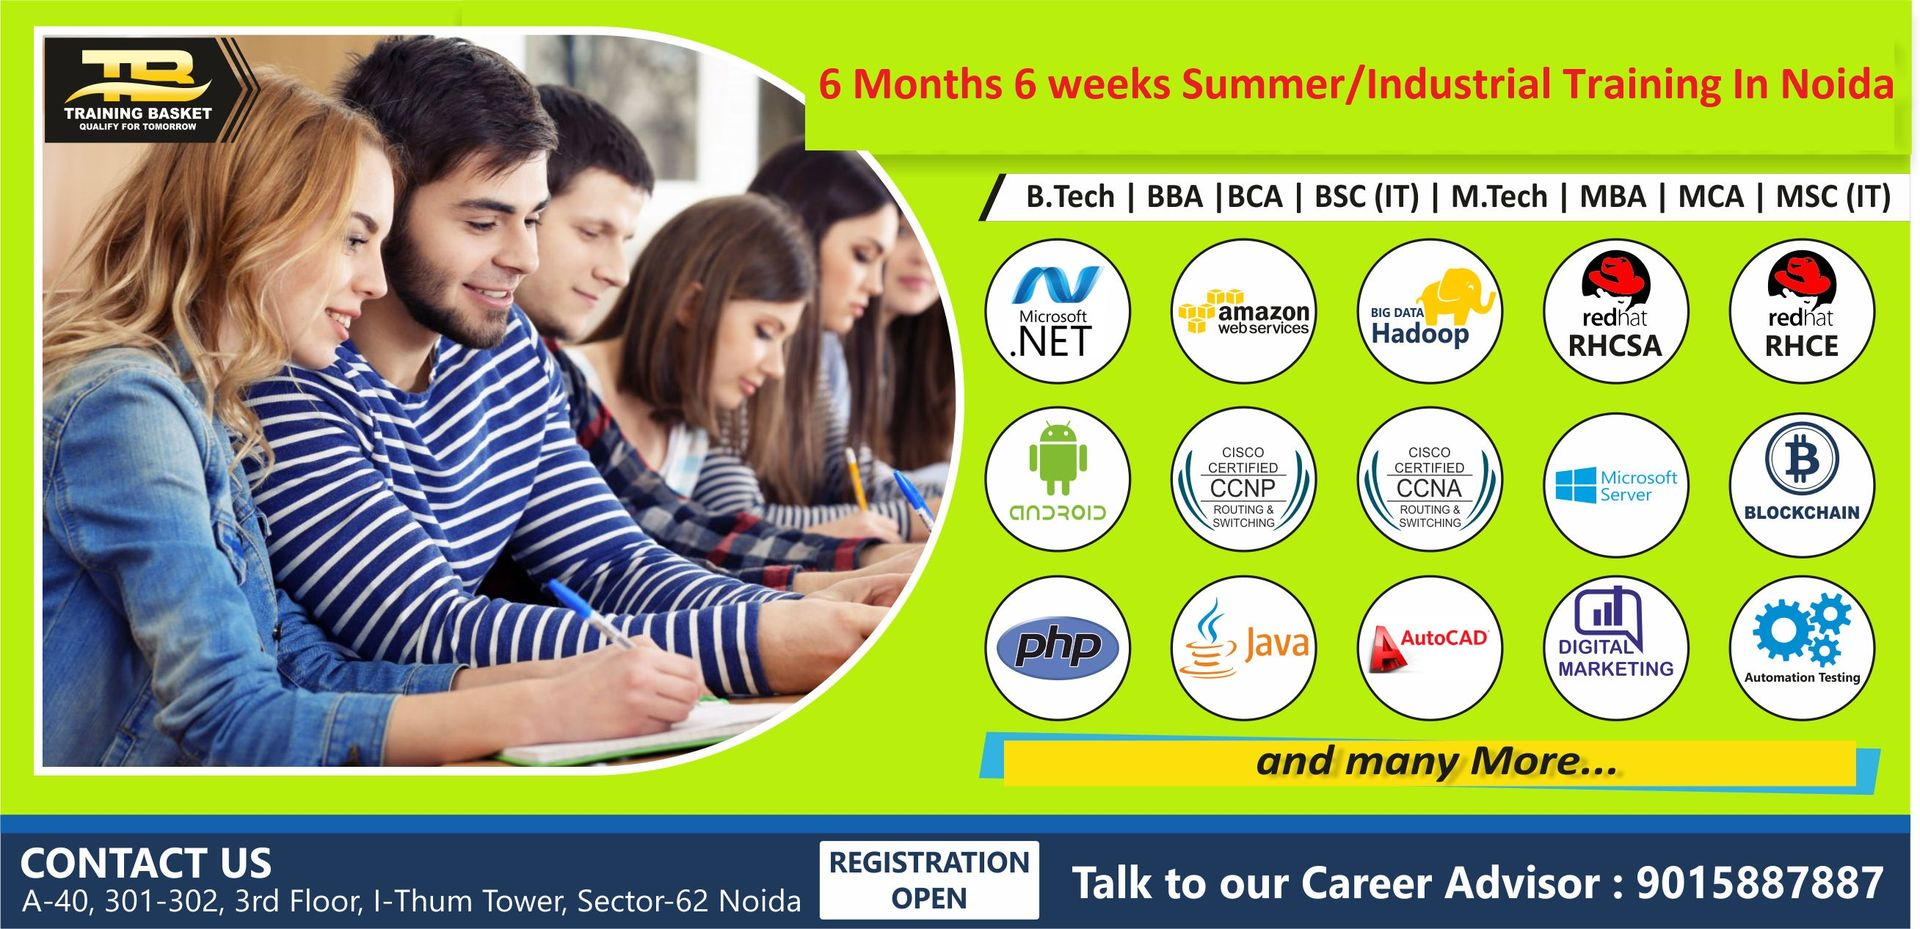 Industrial training in Noida-6 Months Industrial Training with Live project